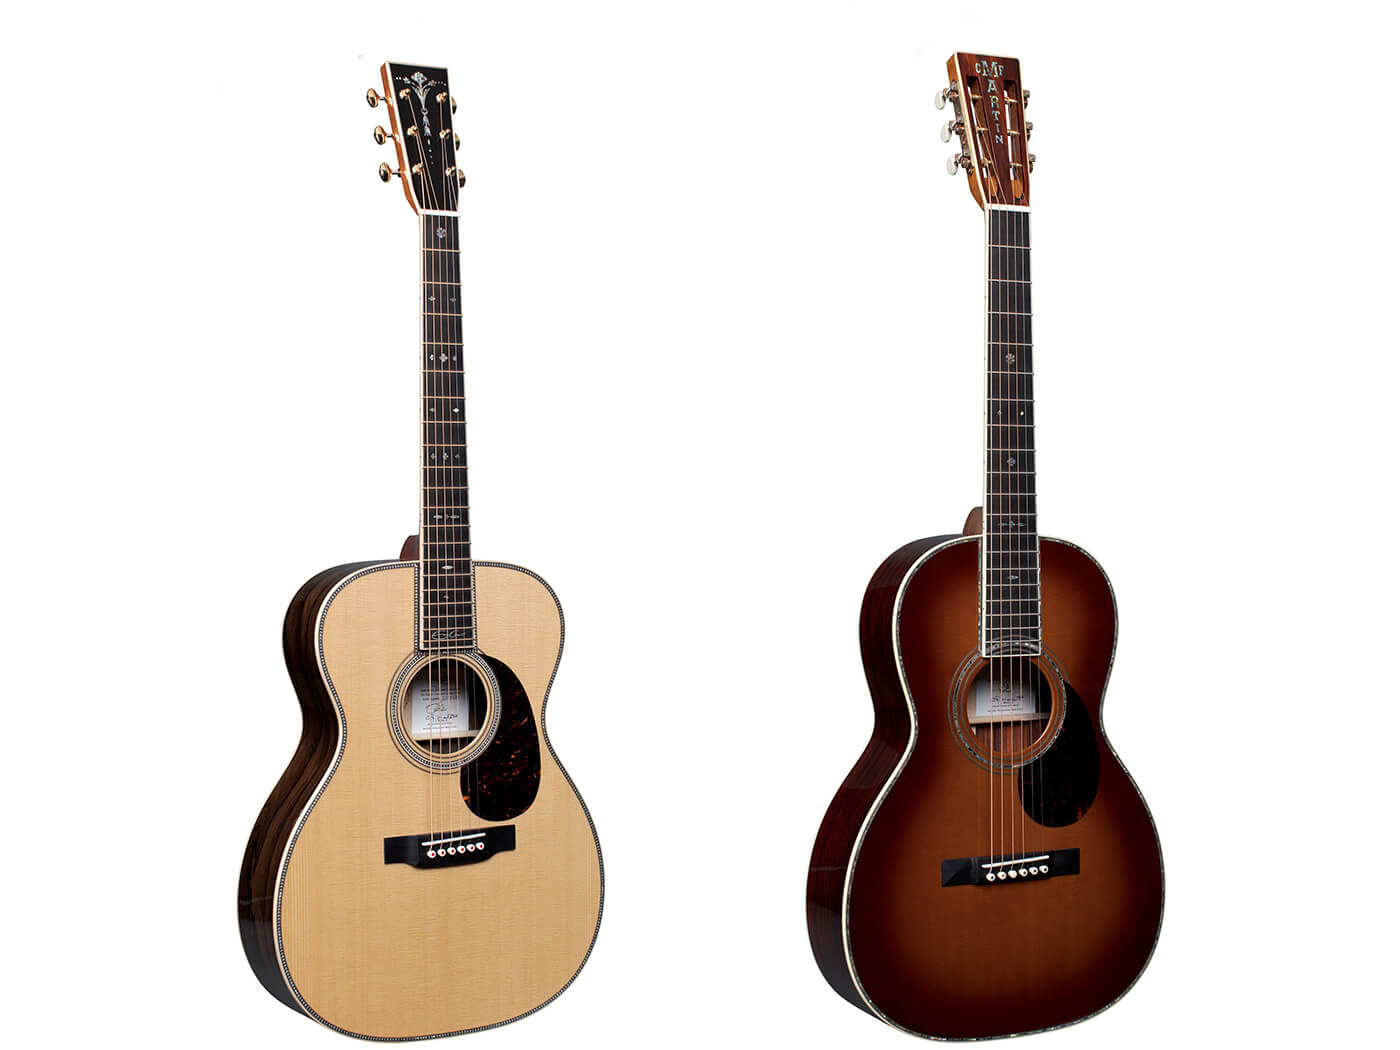 NAMM 2020: Martin collaborates with Eric Clapton, John Mayer on Crossroads guitars - Guitar.com | All Things Guitar